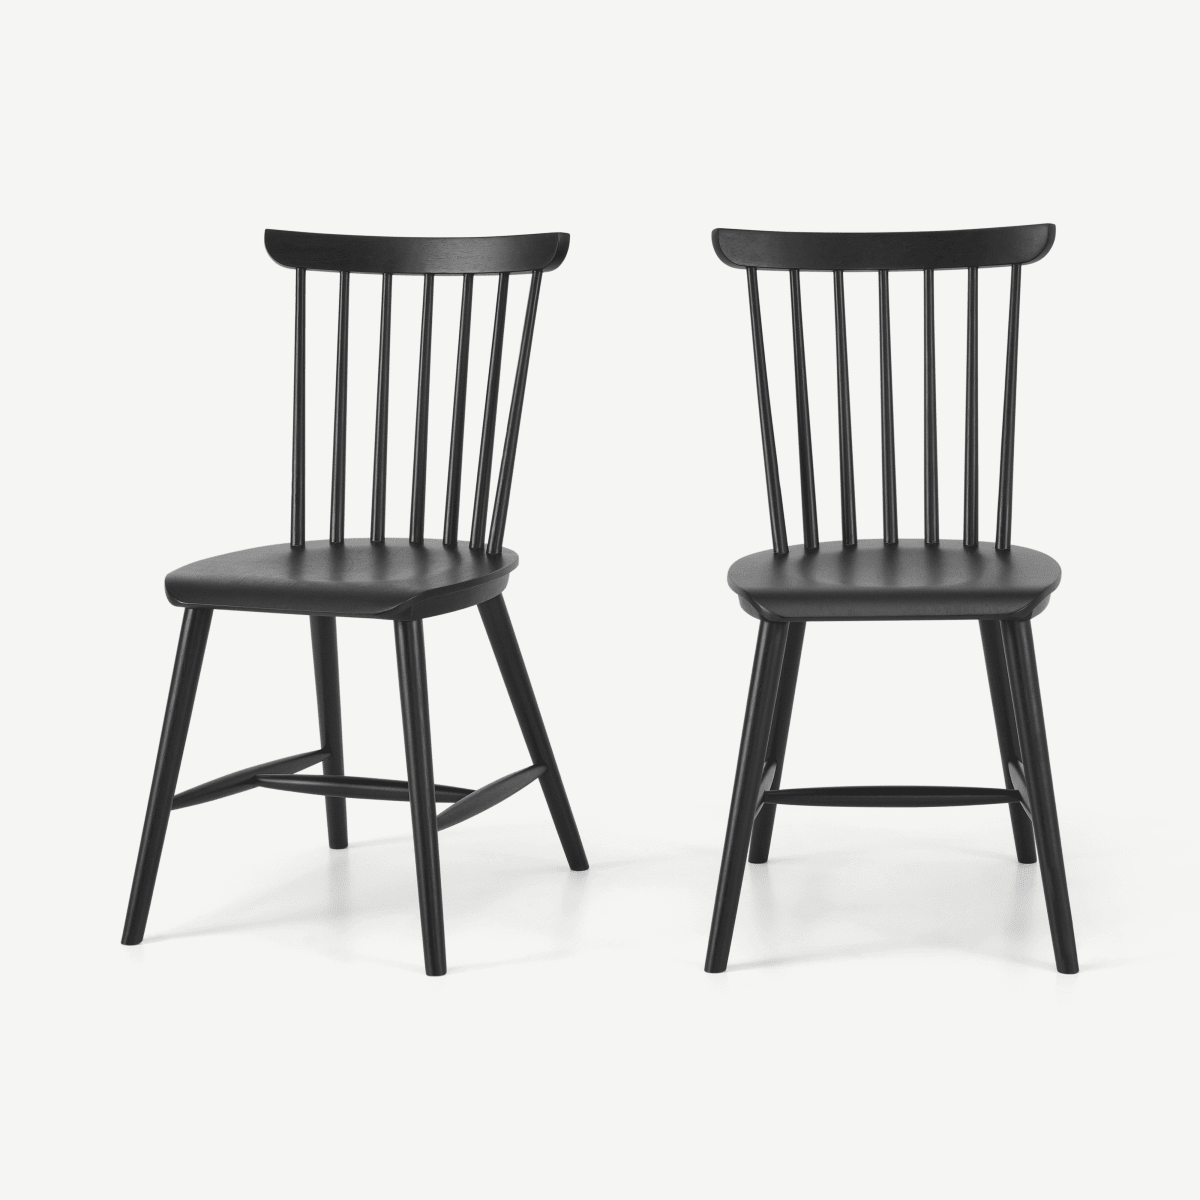 Deauville Set of 2 Dining Chairs, Charcoal Black